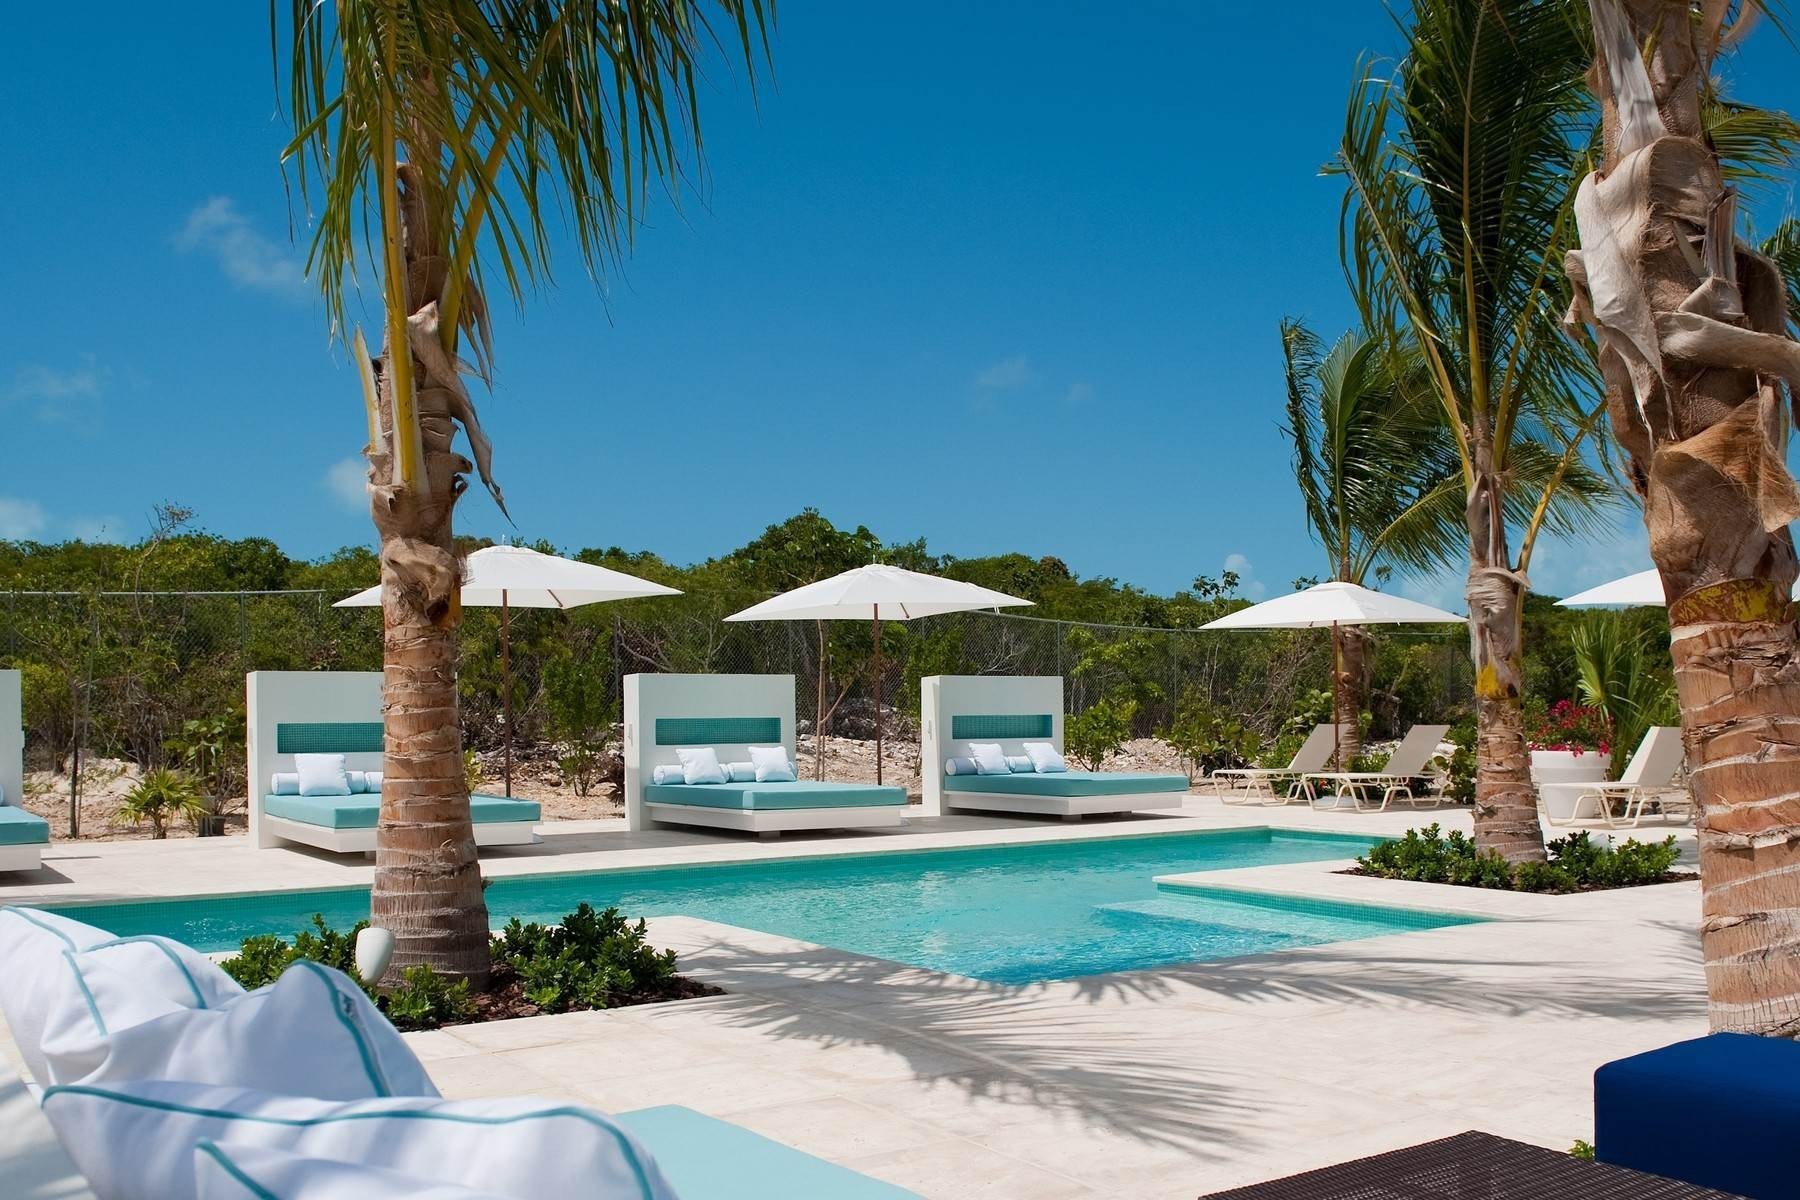 3. townhouses at Thompson Cove, Providenciales, Turks And Caicos Islands